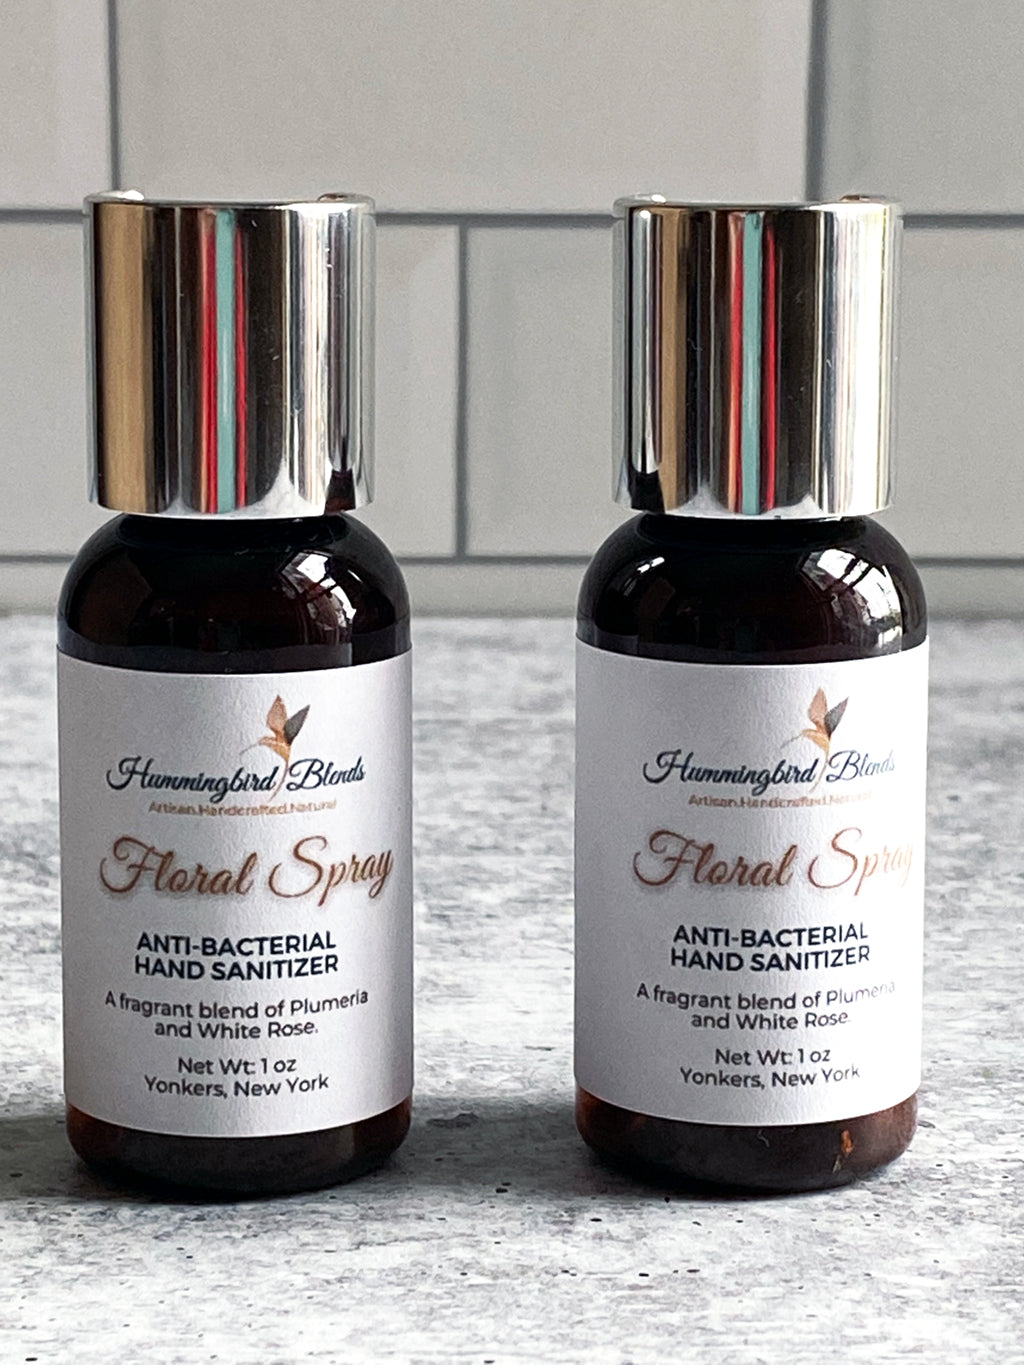 Floral Spray Hand Sanitizer - Hummingbird Blends